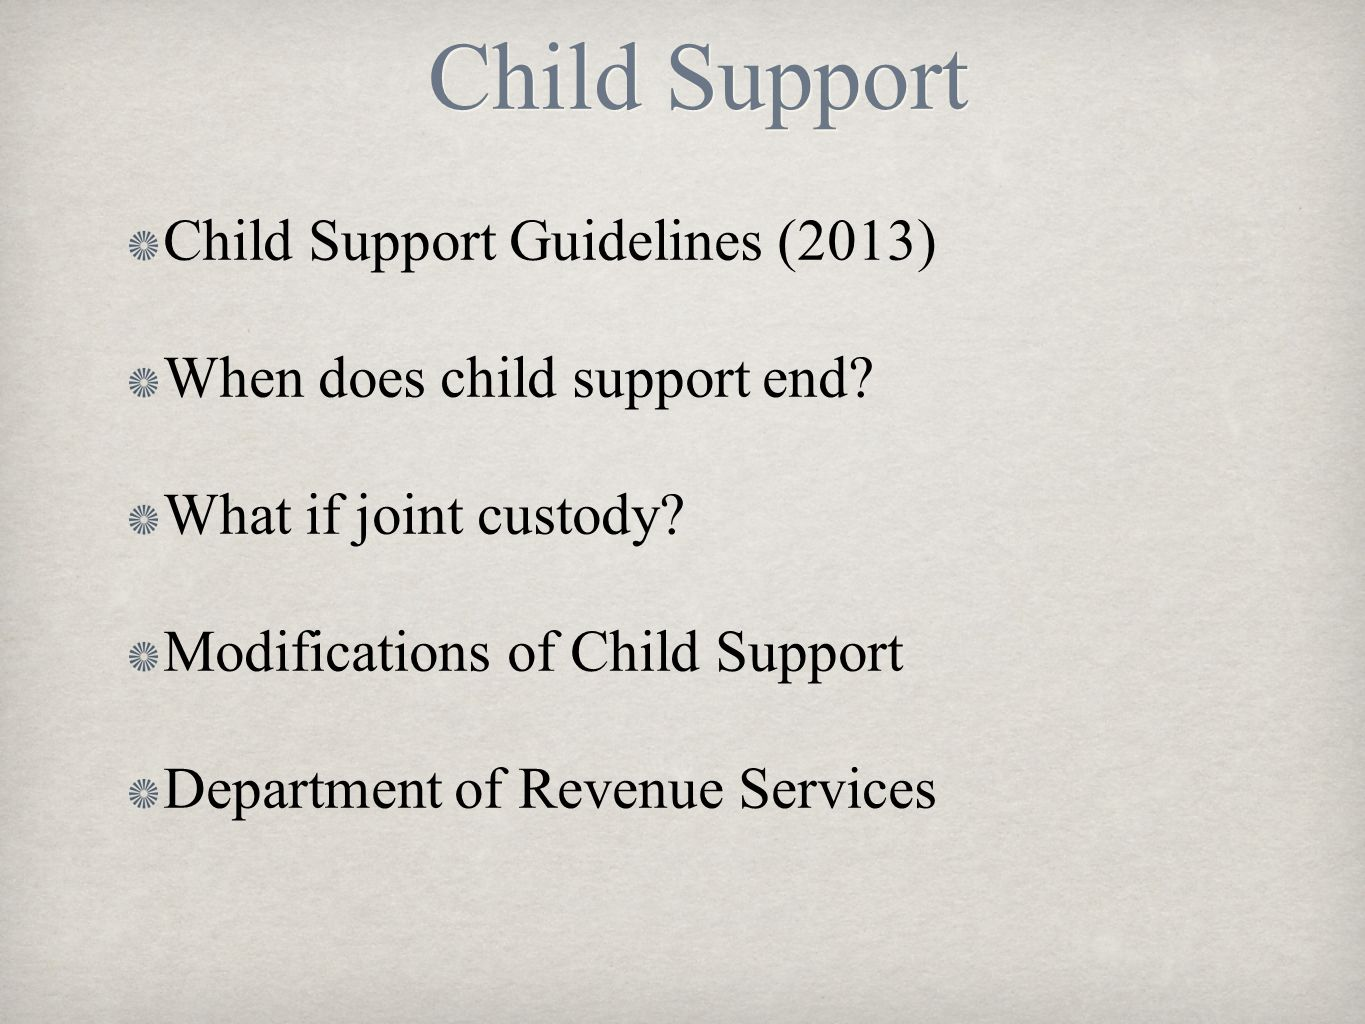 Child Support Child Support Guidelines (2013) When does child support end? What if joint custody? Modifications of Child Support Department of Revenue